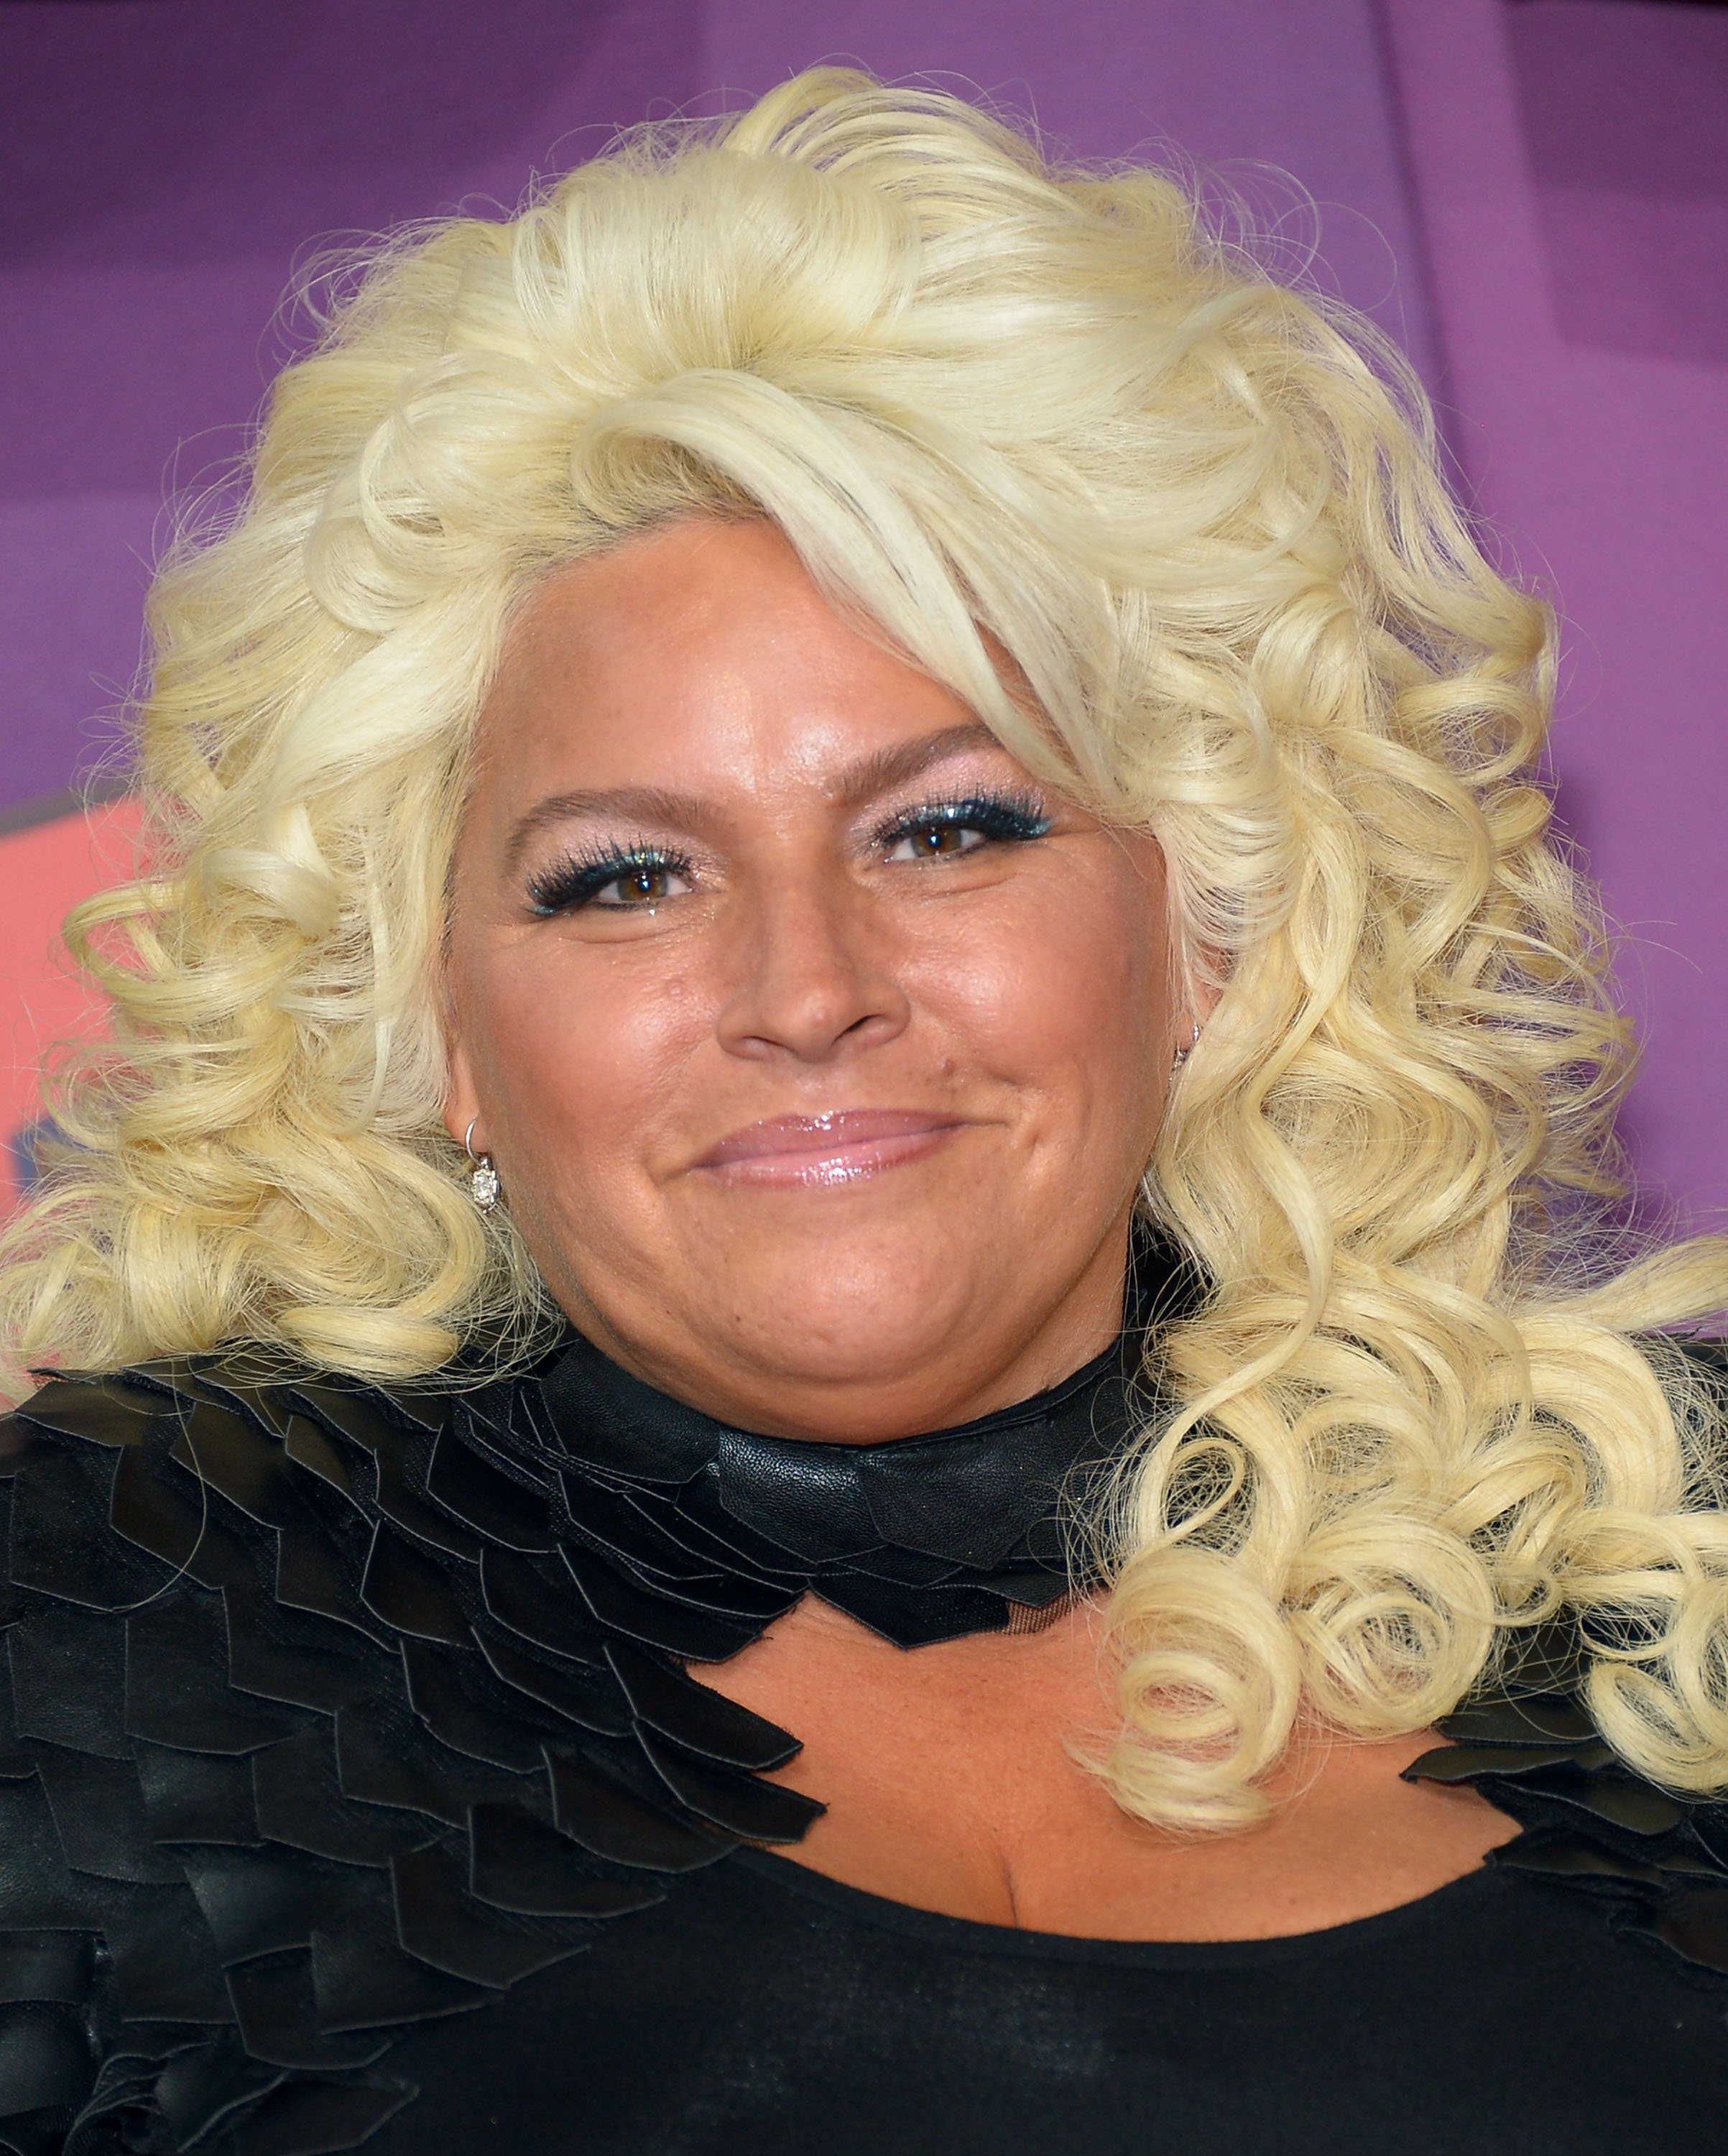 Beth Chapman attends the 2014 CMT Music awards on June 4, 2014, in Nashville, Tennessee. | Source: Getty Images.